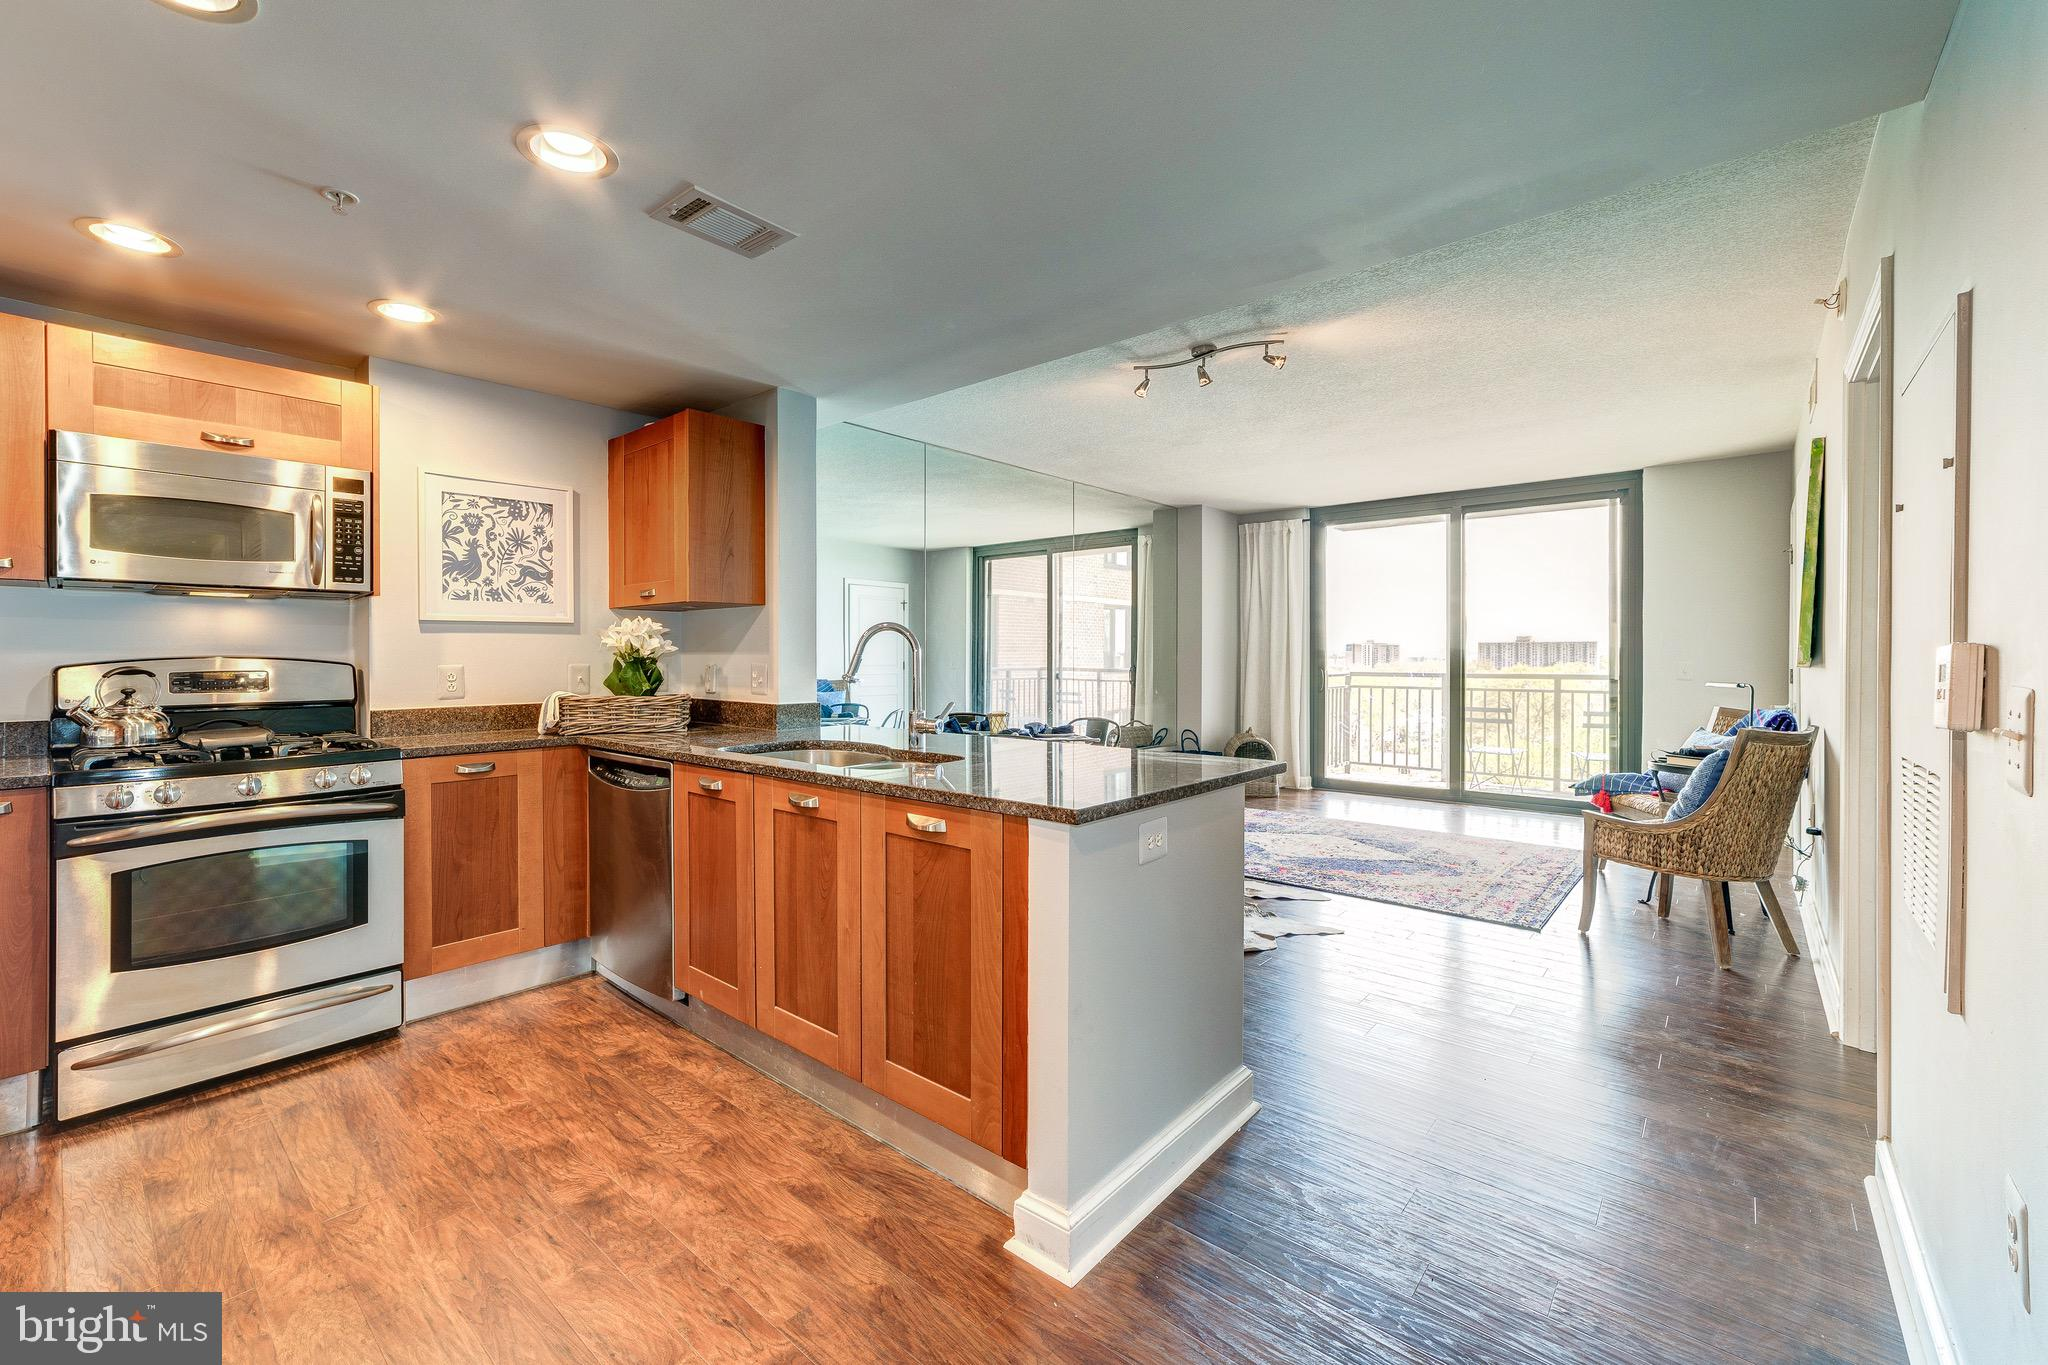 Stunning condo in the sought after Midtown Alexandria area. Recently renovated with new hardwood floors, freshly painted and much more! This unit also comes with it's own assigned parking spot G350 which is located right next to door into  the building and one of the largest storage units  located on the fifth floor !!! $3,000 water heater was just installed! Amenities include an expansive swimming pool with spa and waterfall, fitness club, tiki bar, cyber caf~, residents~ clubroom and 24-hour front desk. Located right next to the Huntington Metro station with a view that will blow you away, this is a home you don't want to miss! Great location for members of the Amazon family moving to the area. COMES WITH A  HOME WARRANTY